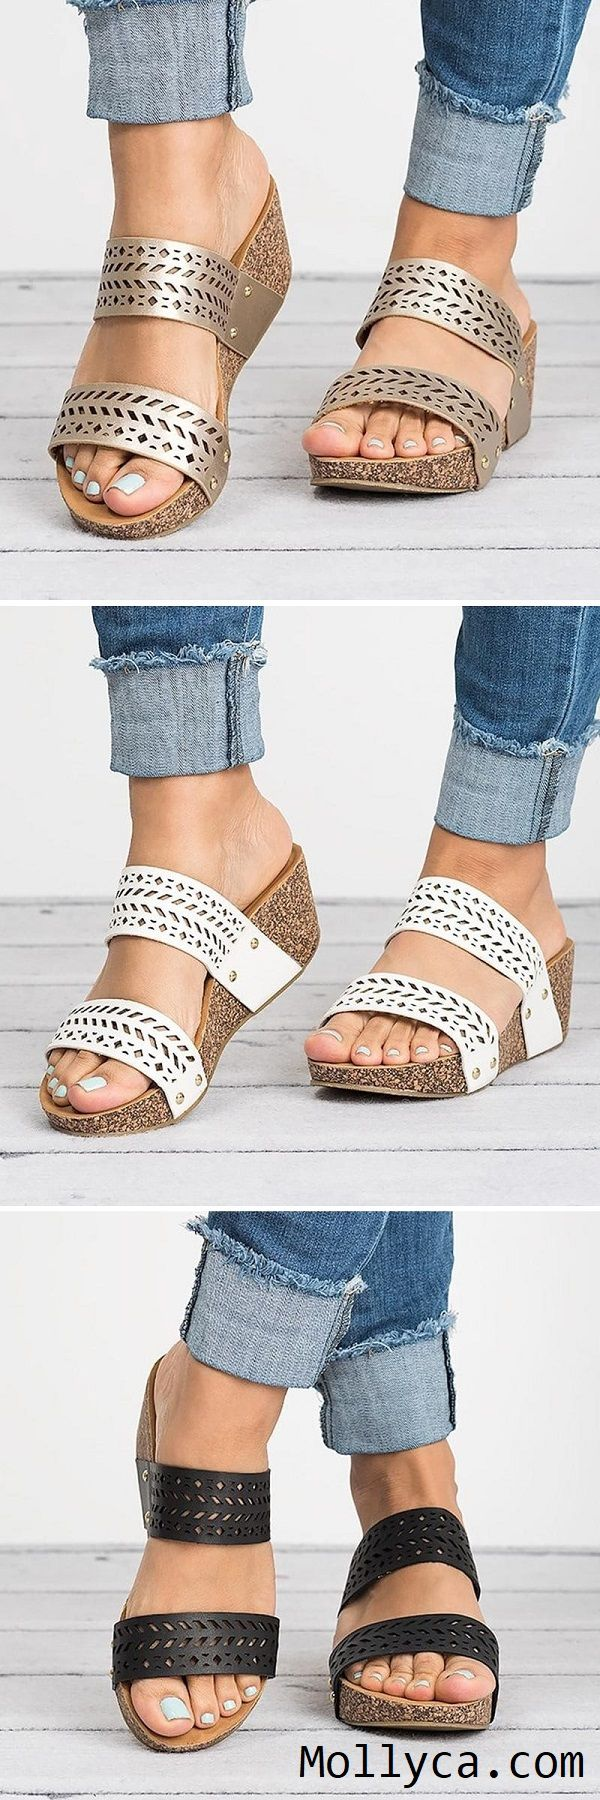 5fa07745a004 Buy 2 Got 5% OFF Code  mollyca Women Wedge Slippers Hollow Casual Comfort  Laser Cut Sandals